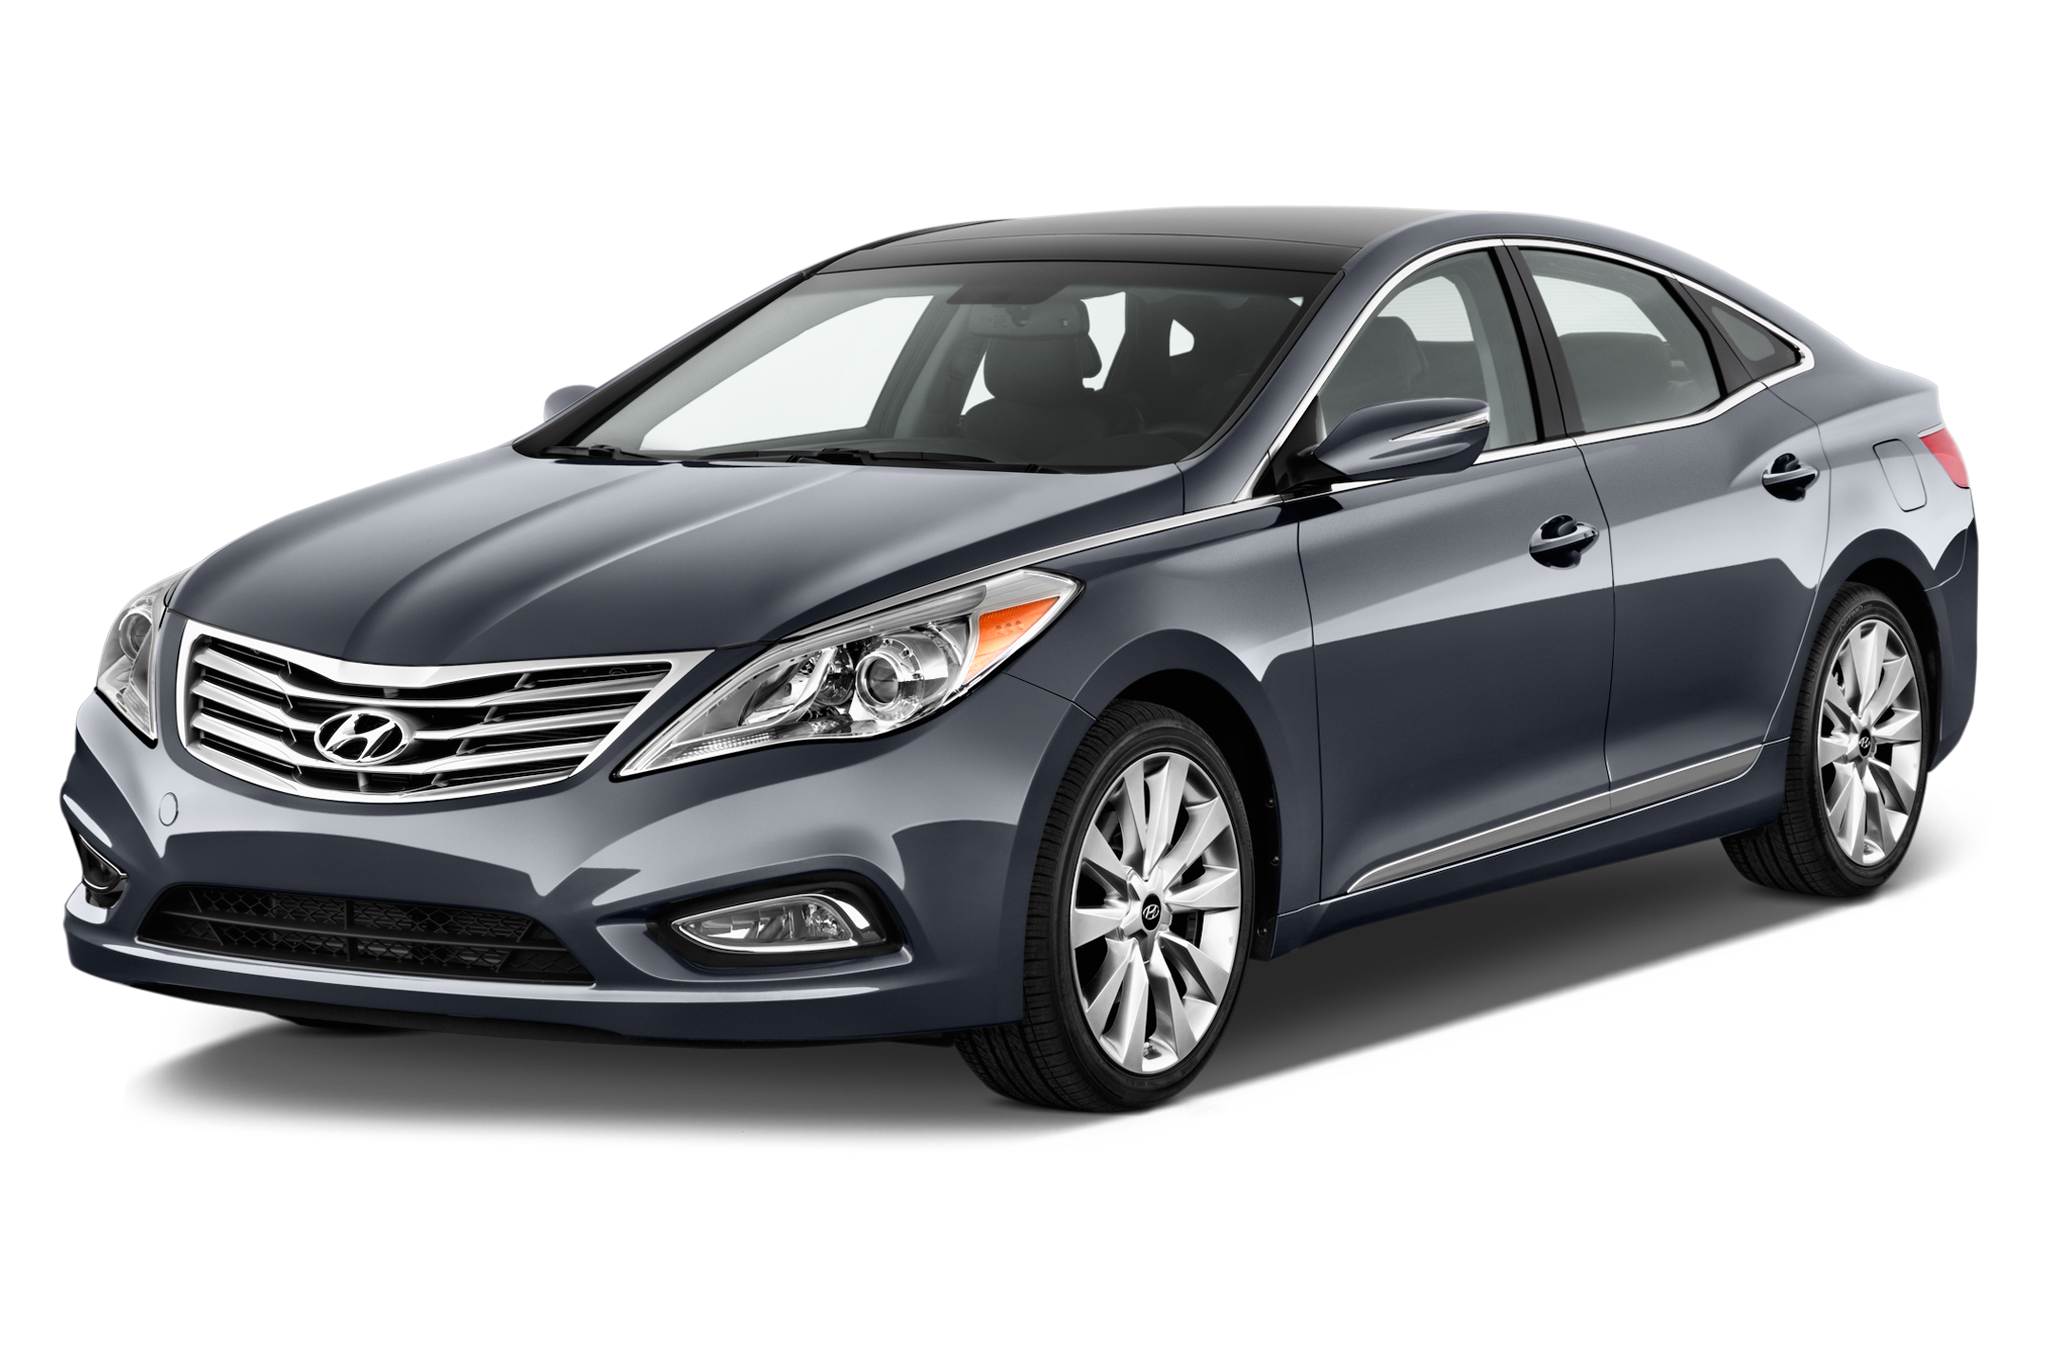 2015 Hyundai Azera Refreshed Gains New Features